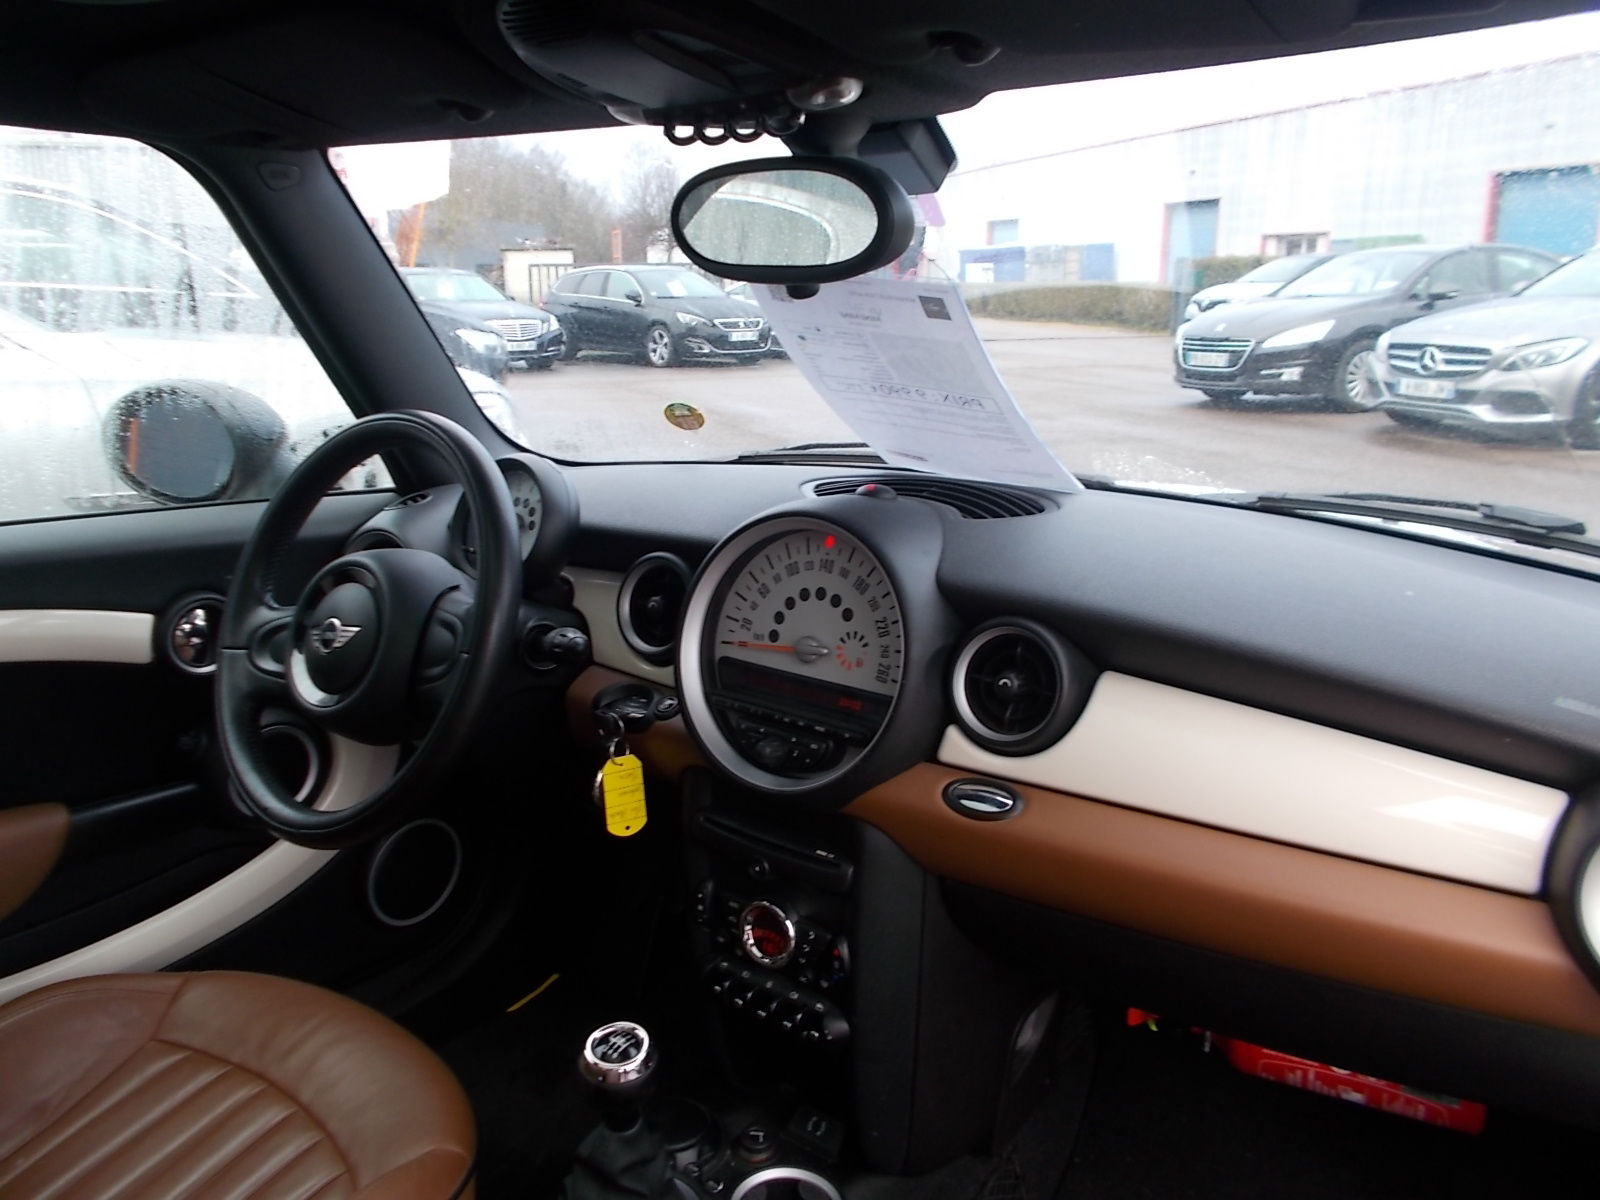 Renault Grand Scenic Iii Dci 110 Cv Expression 7 Places Avec Seulement 68600 Kms Nos